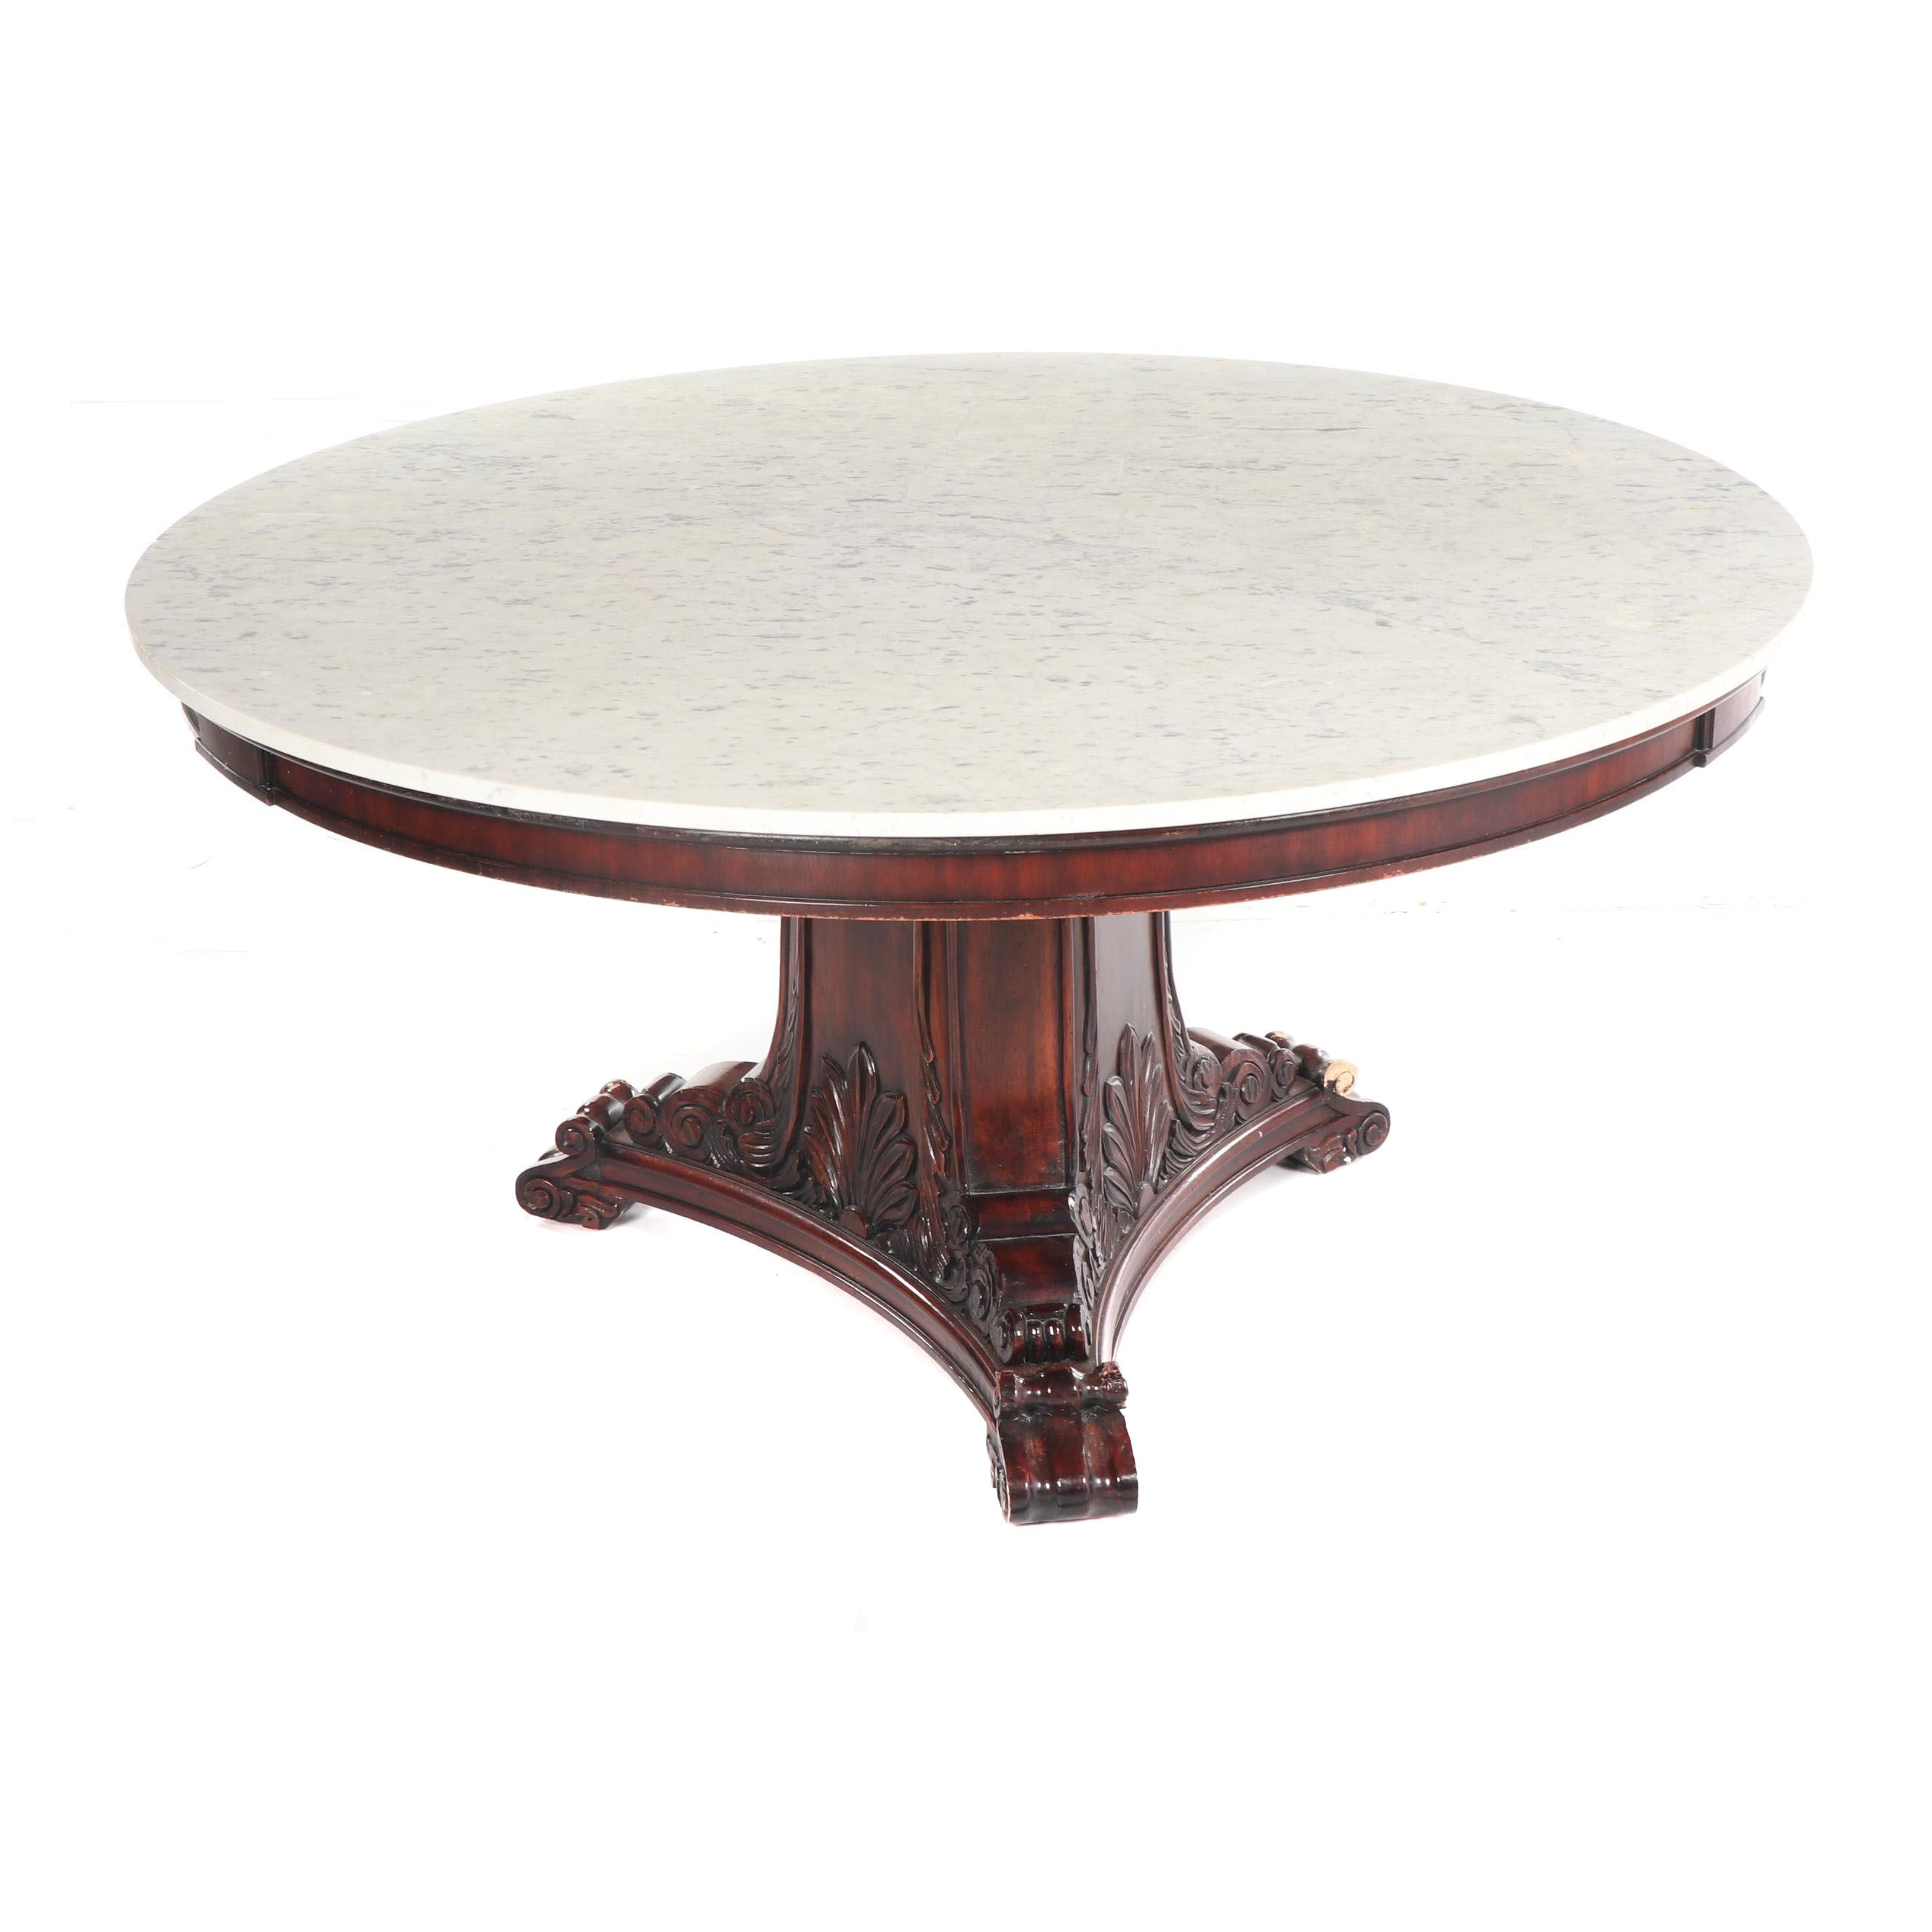 Stone Topped Wooden Pedestal Dining Table, 20th/21st Century